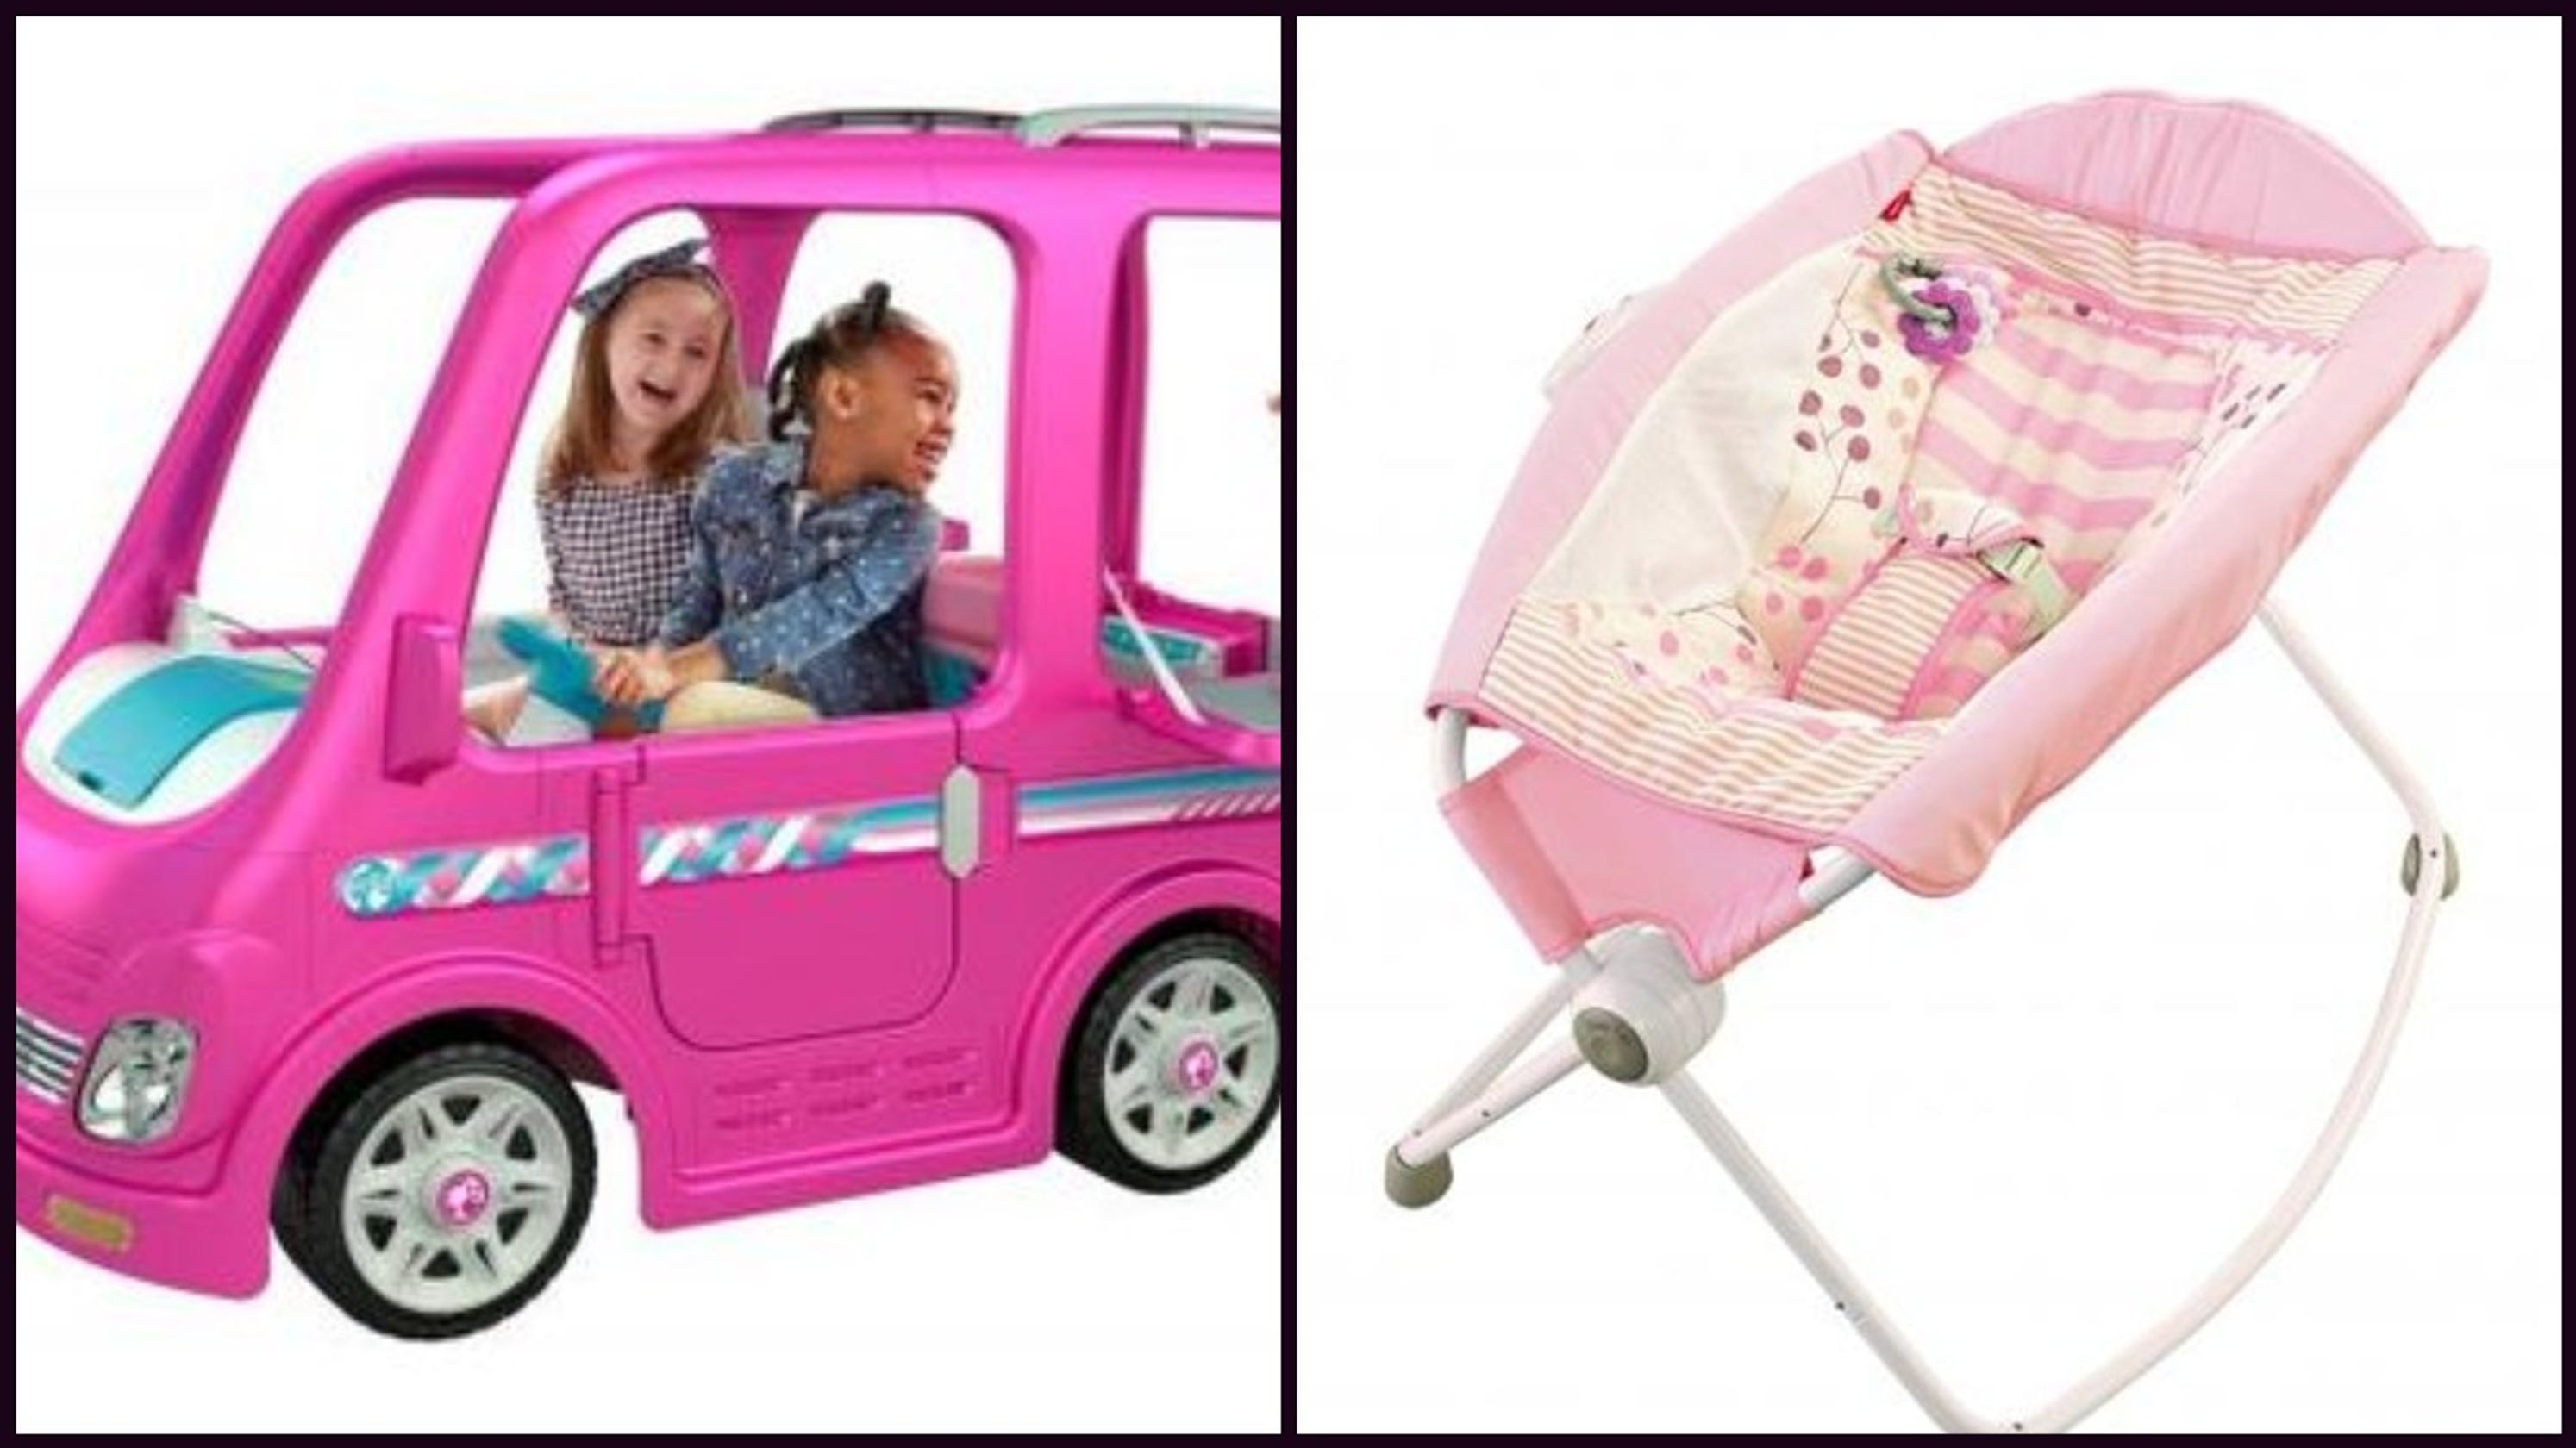 Top toy and other baby product recalls for 2019